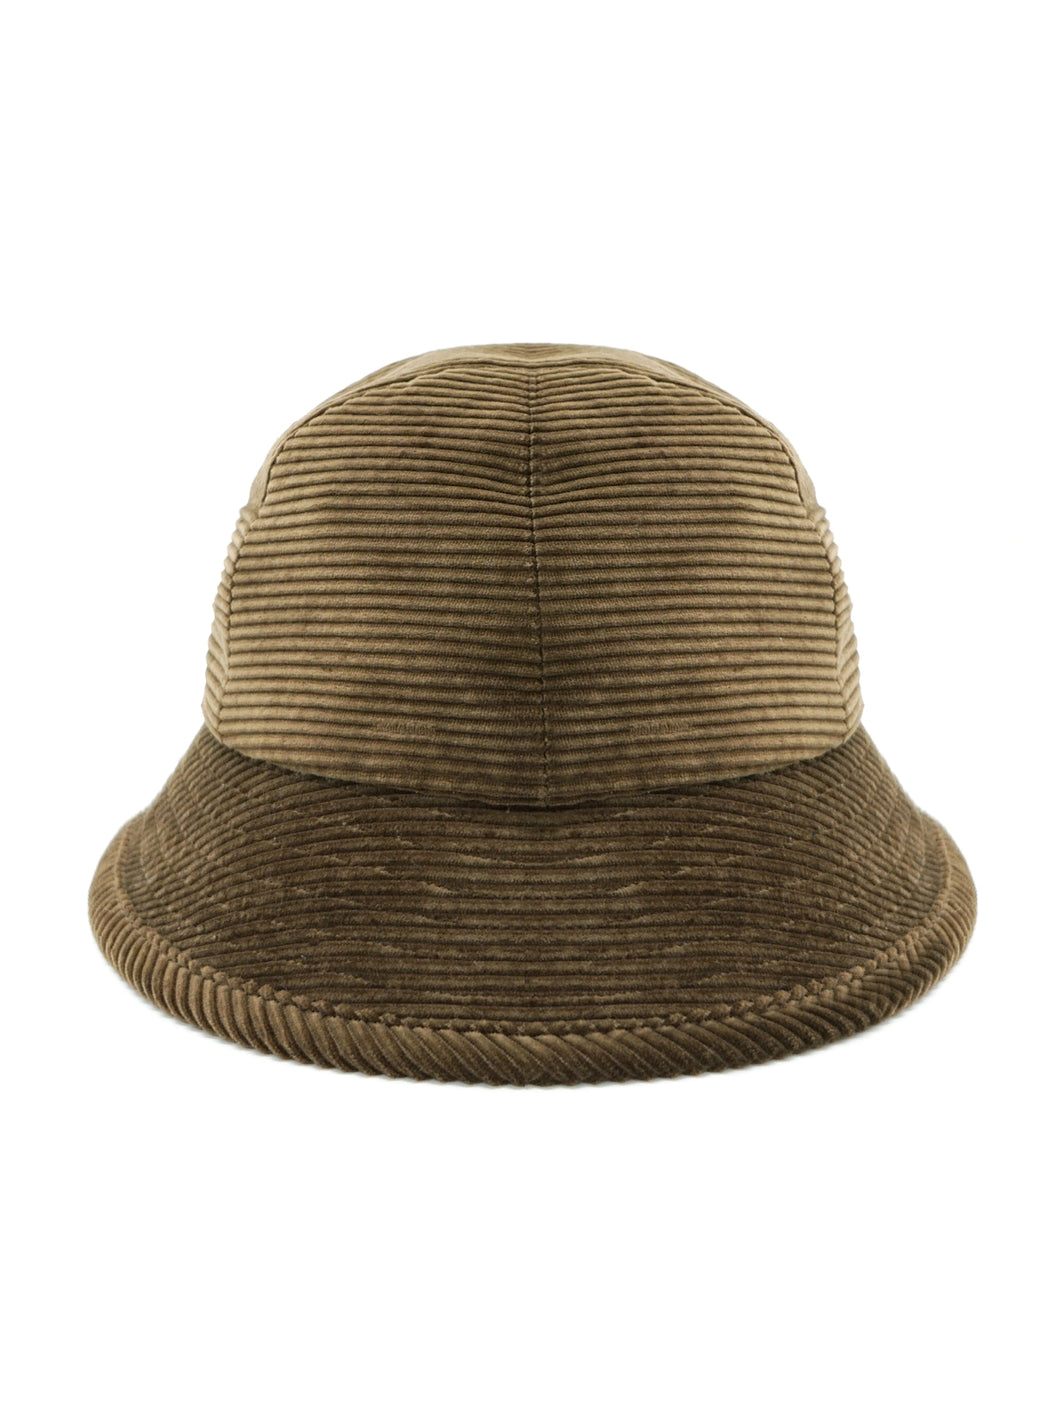 CORDUROY BUCKET HAT